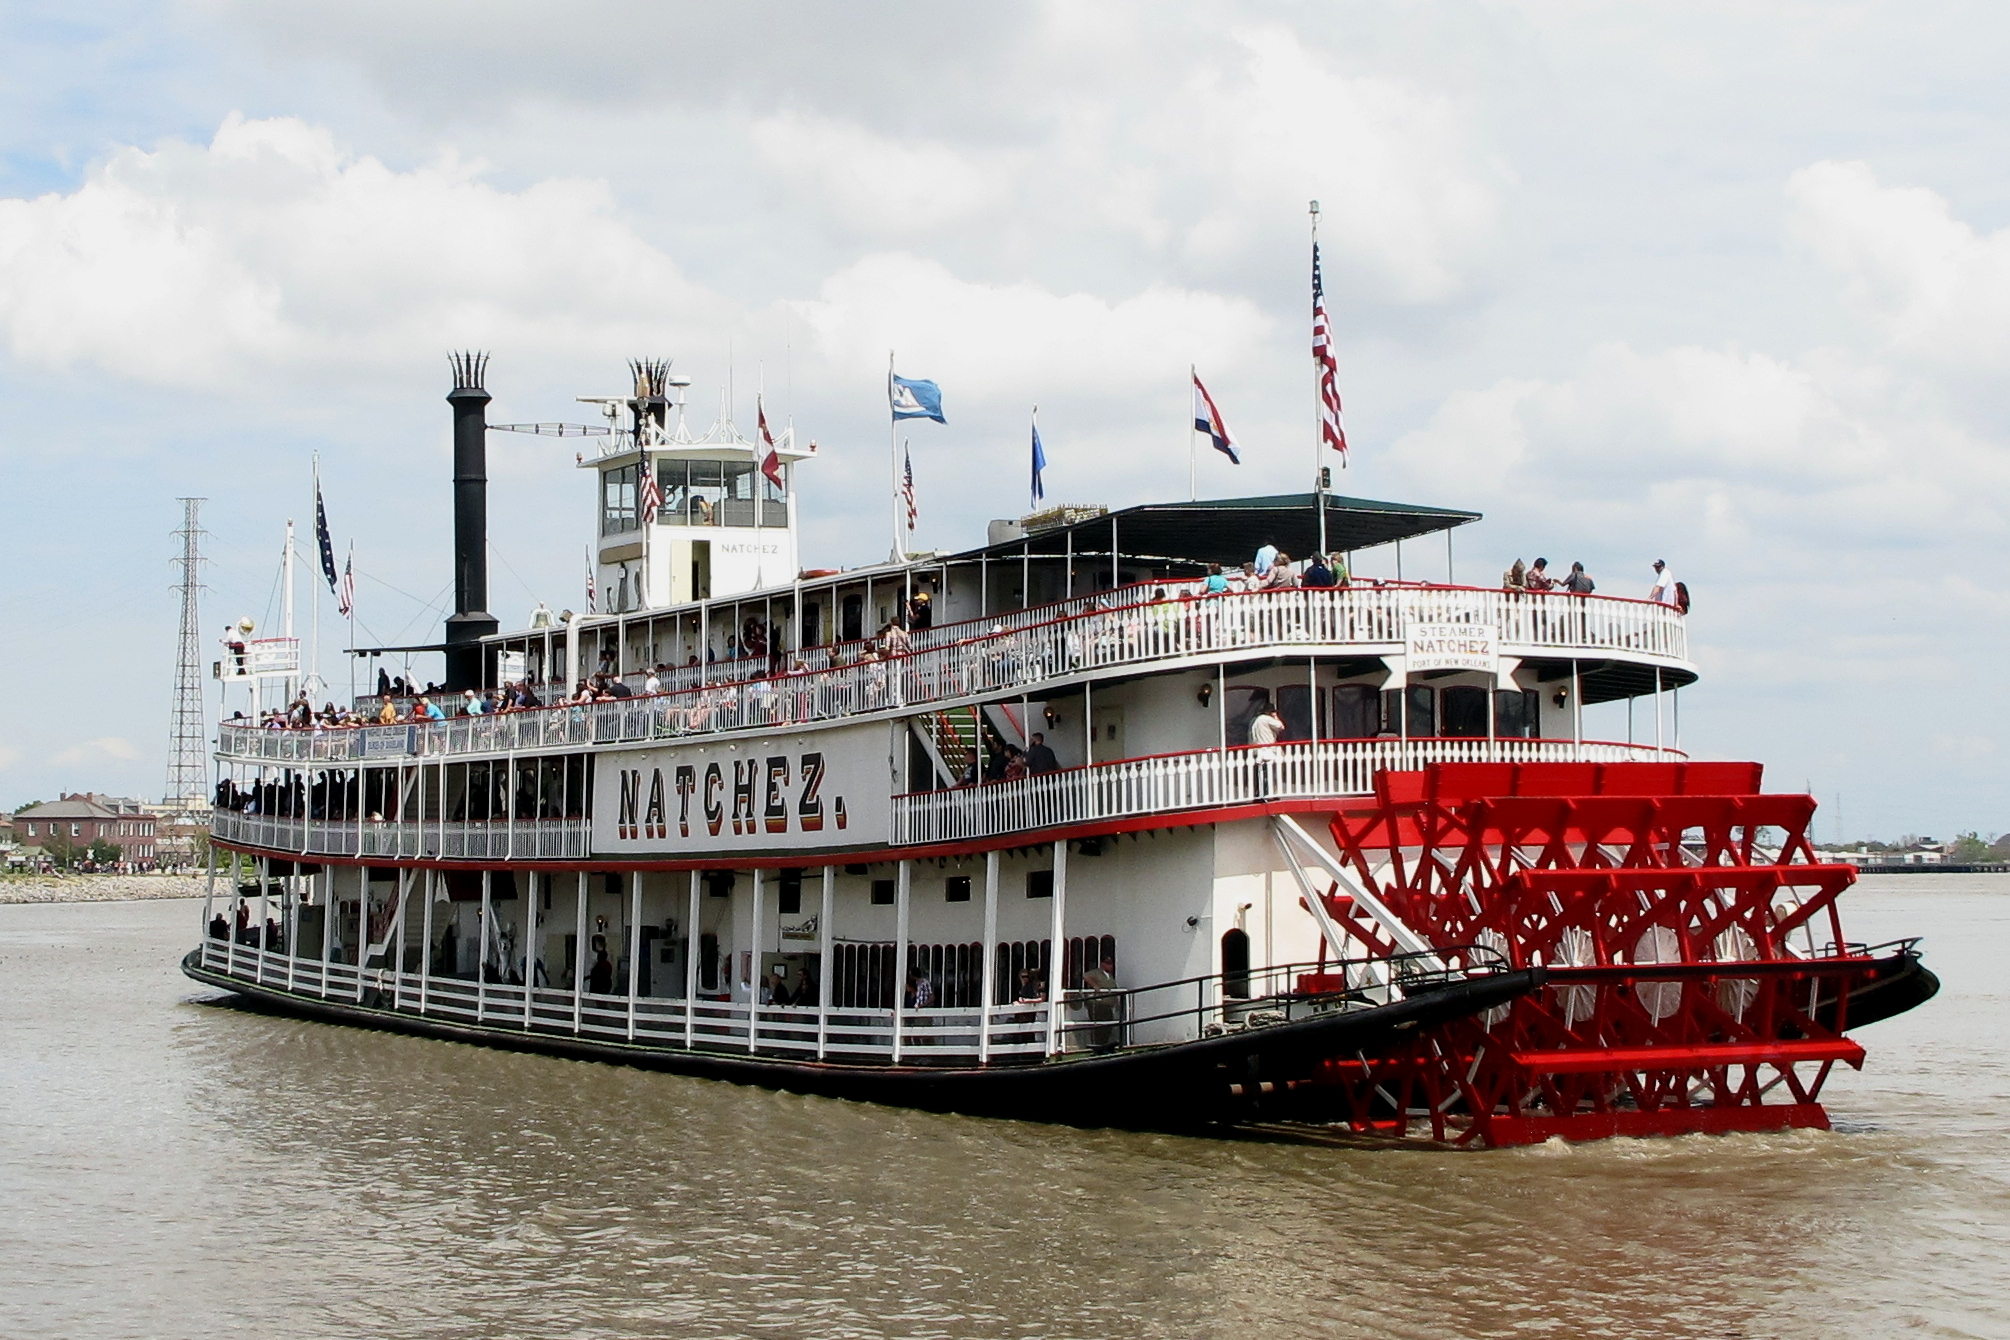 Explore the city by land and by steamboat down the mighty Mississippi